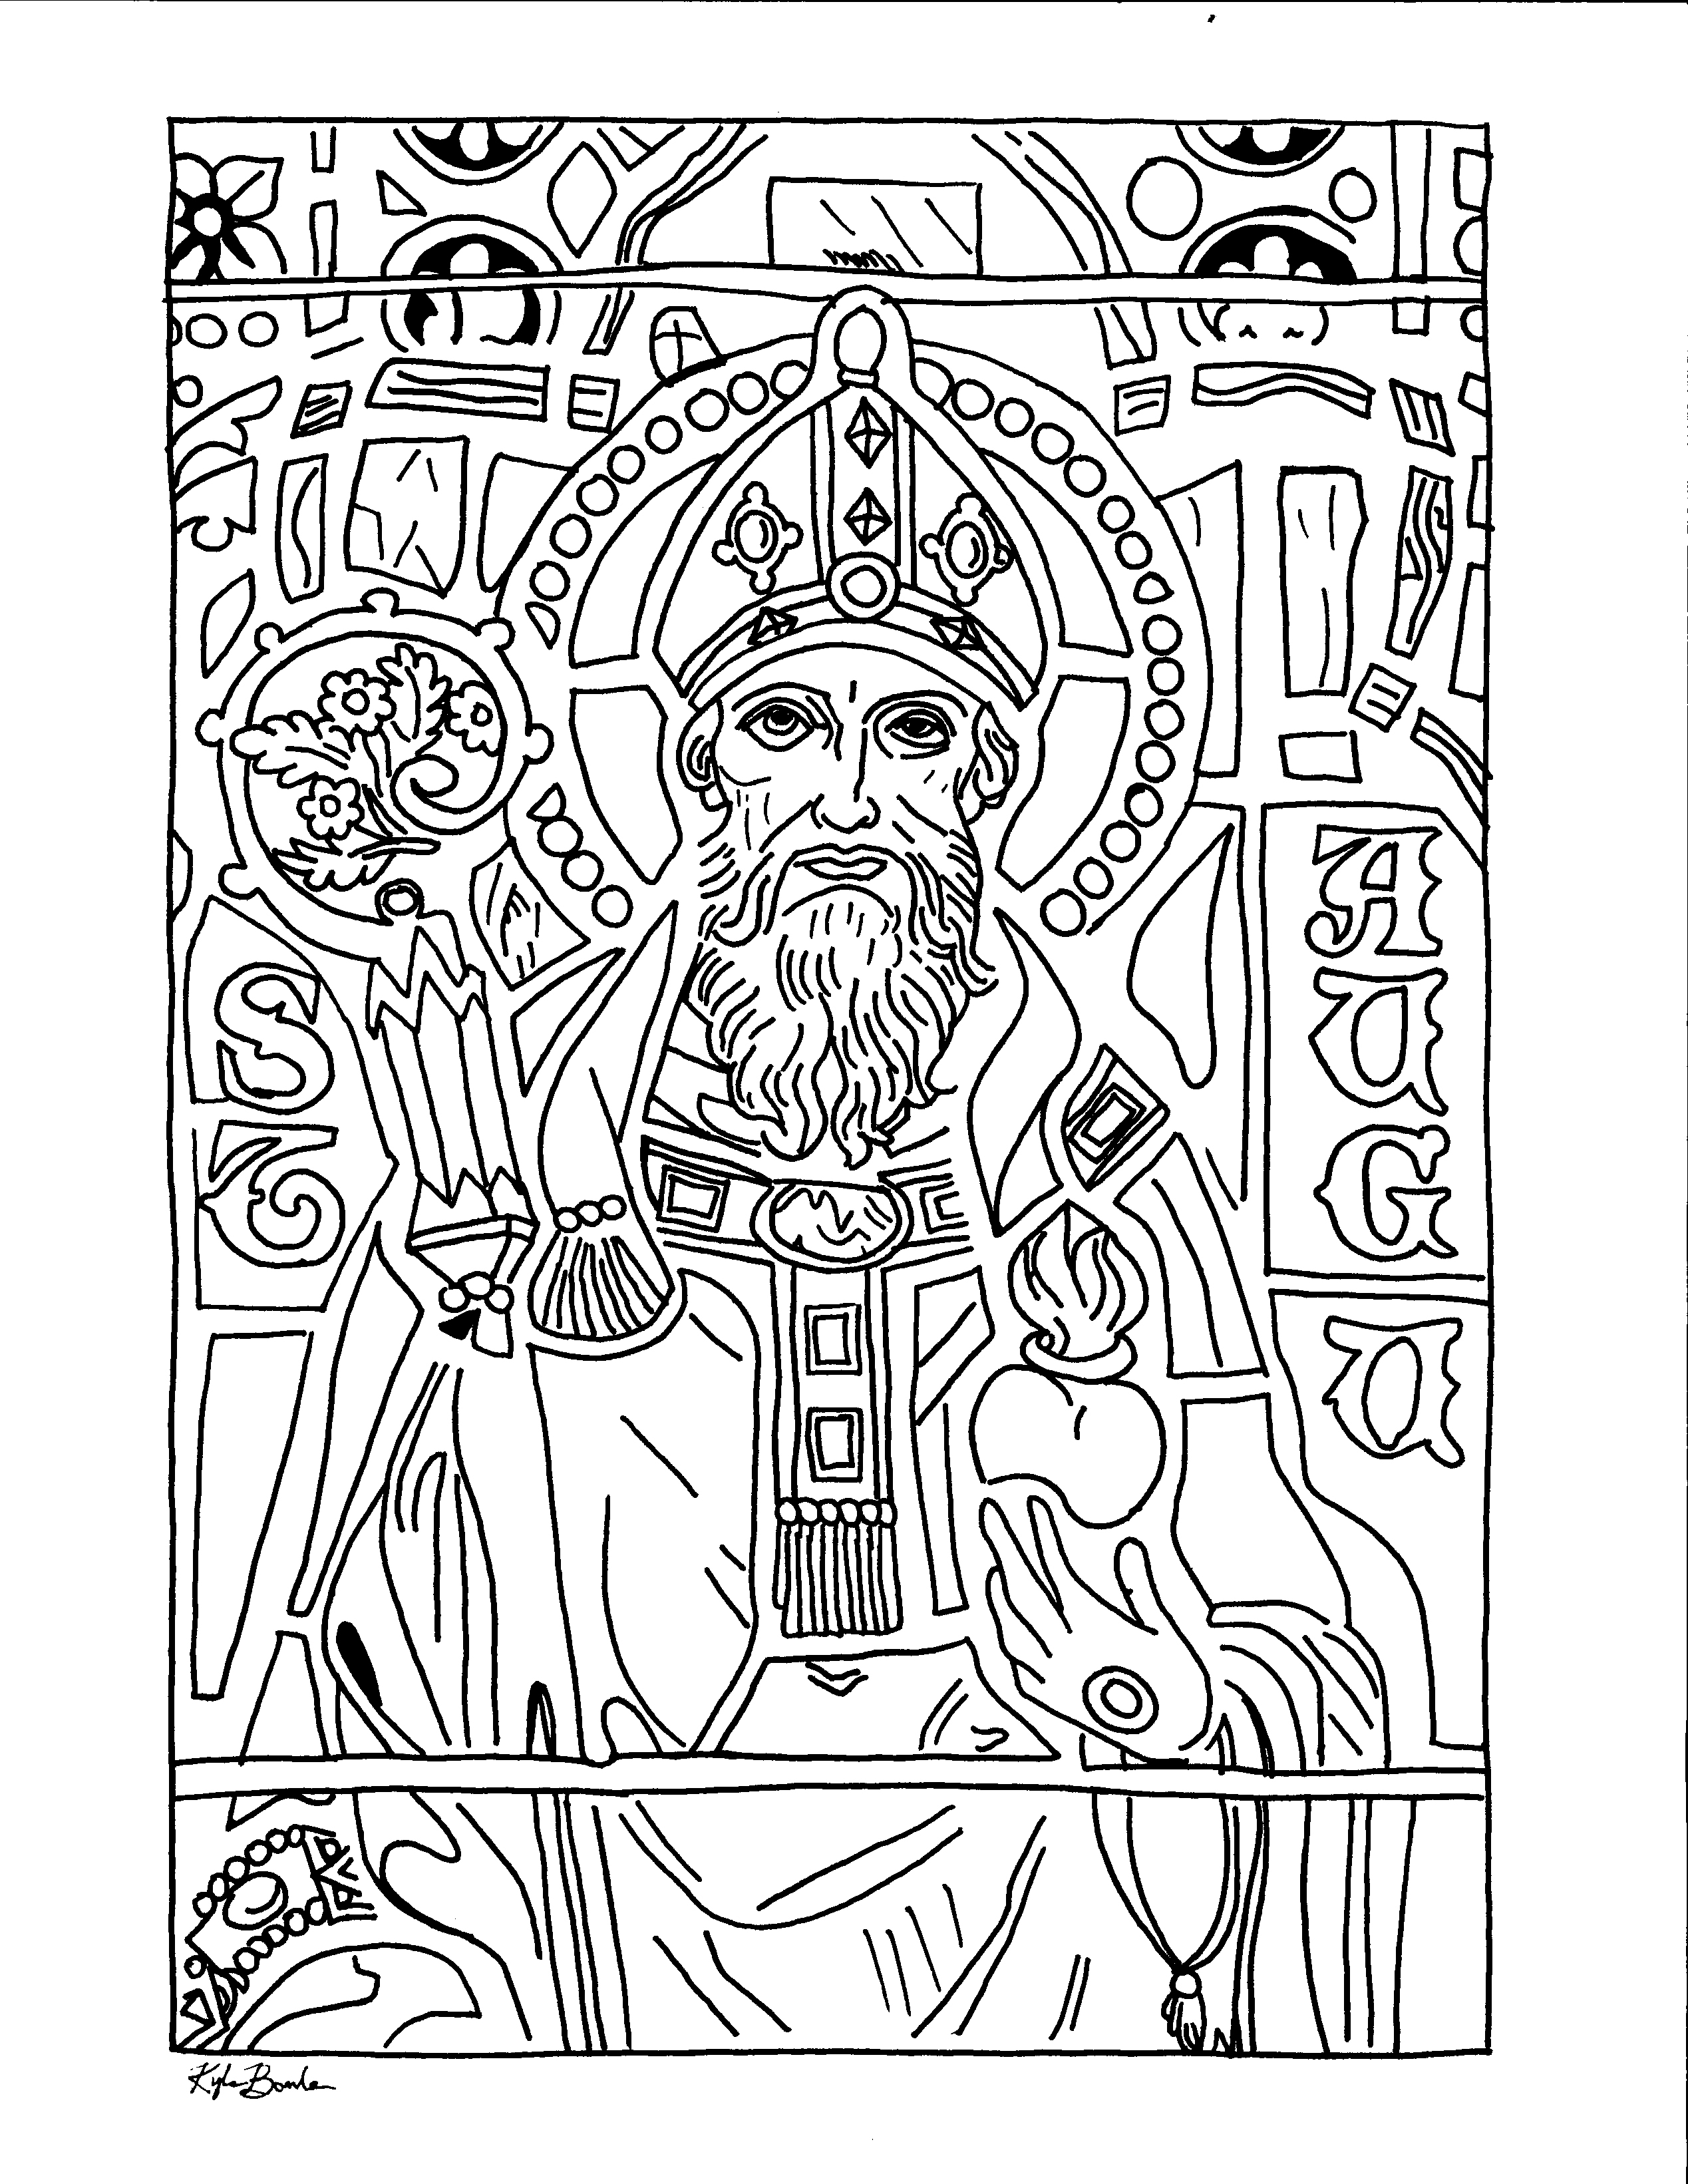 coloring page of st. augustine